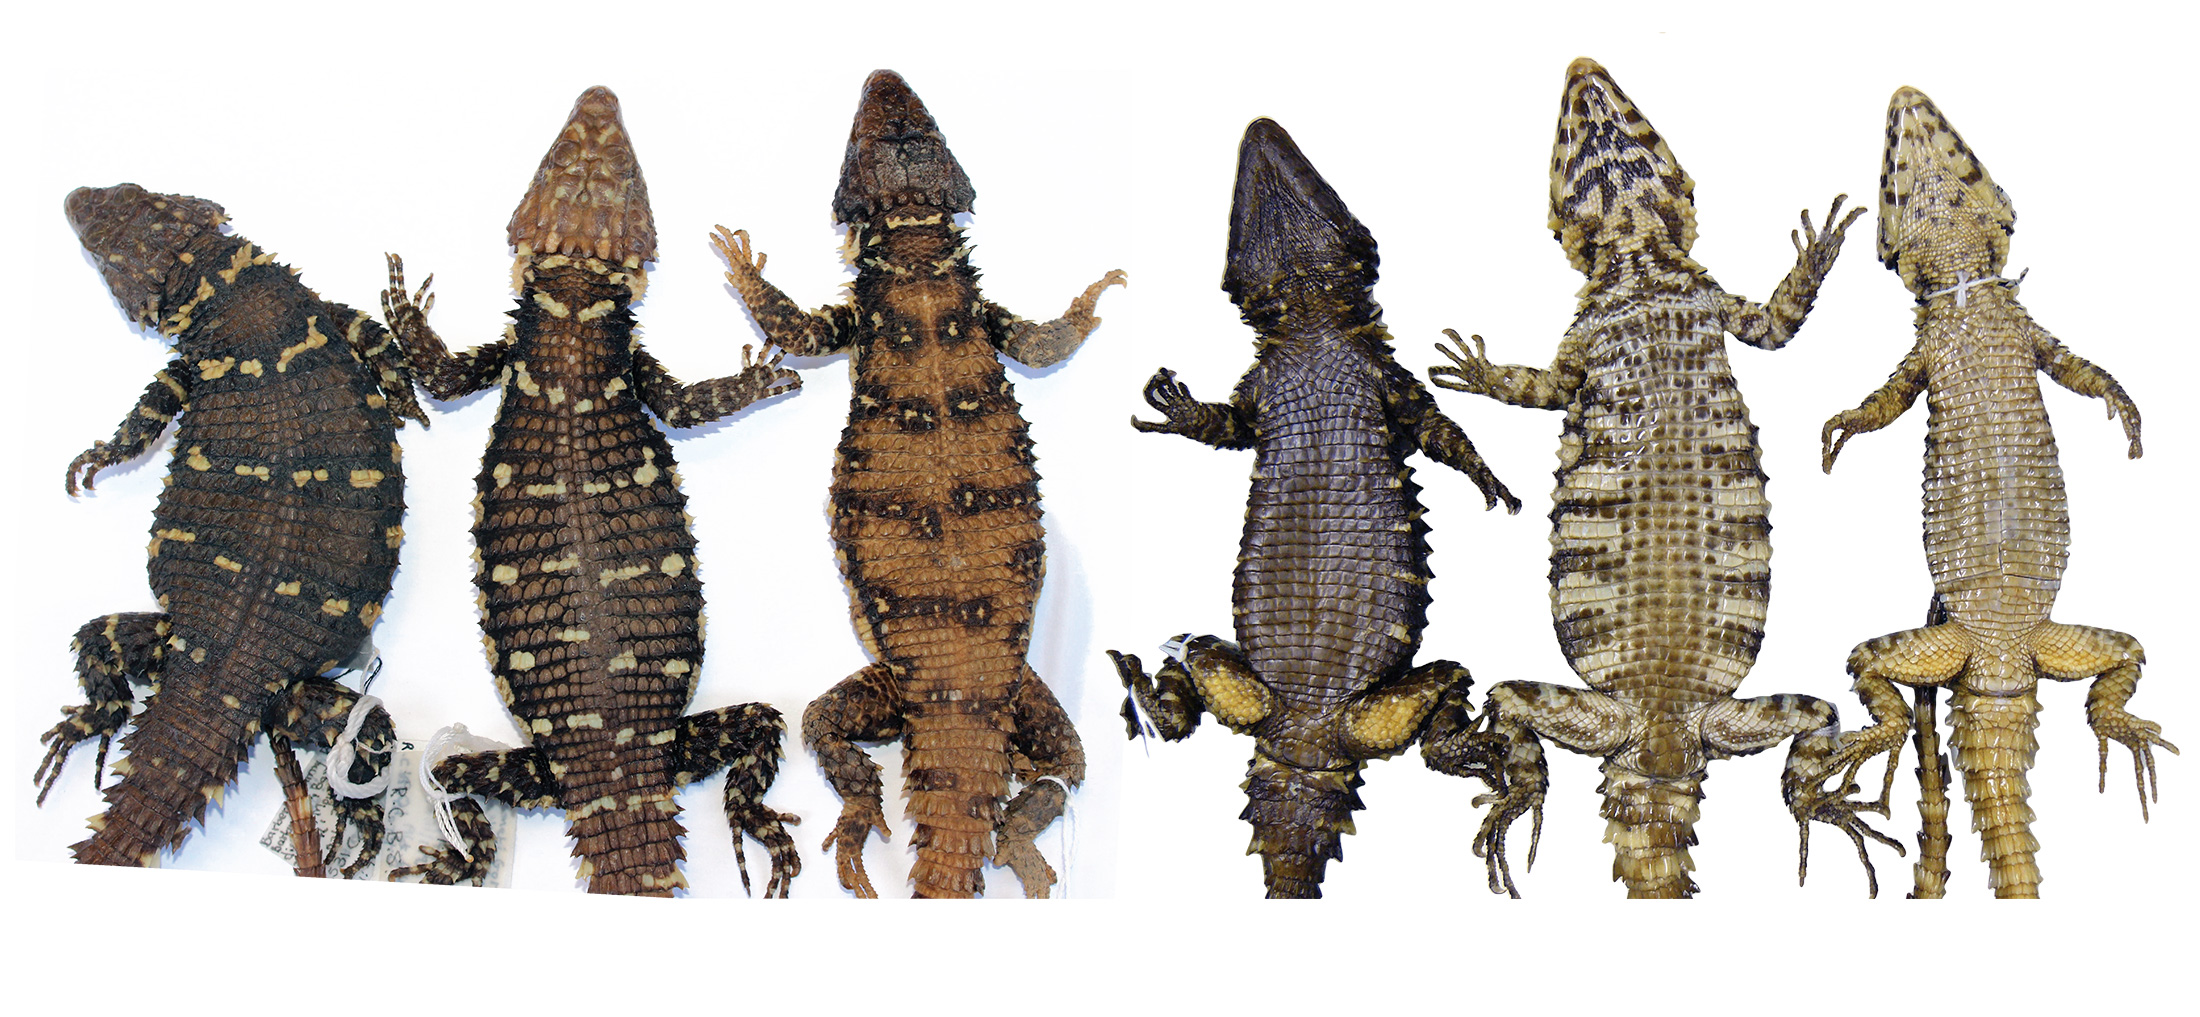 A row of Smaug lizards sit on a white background, some with darker scales and yellow markings and others with lighter scales and brown markings